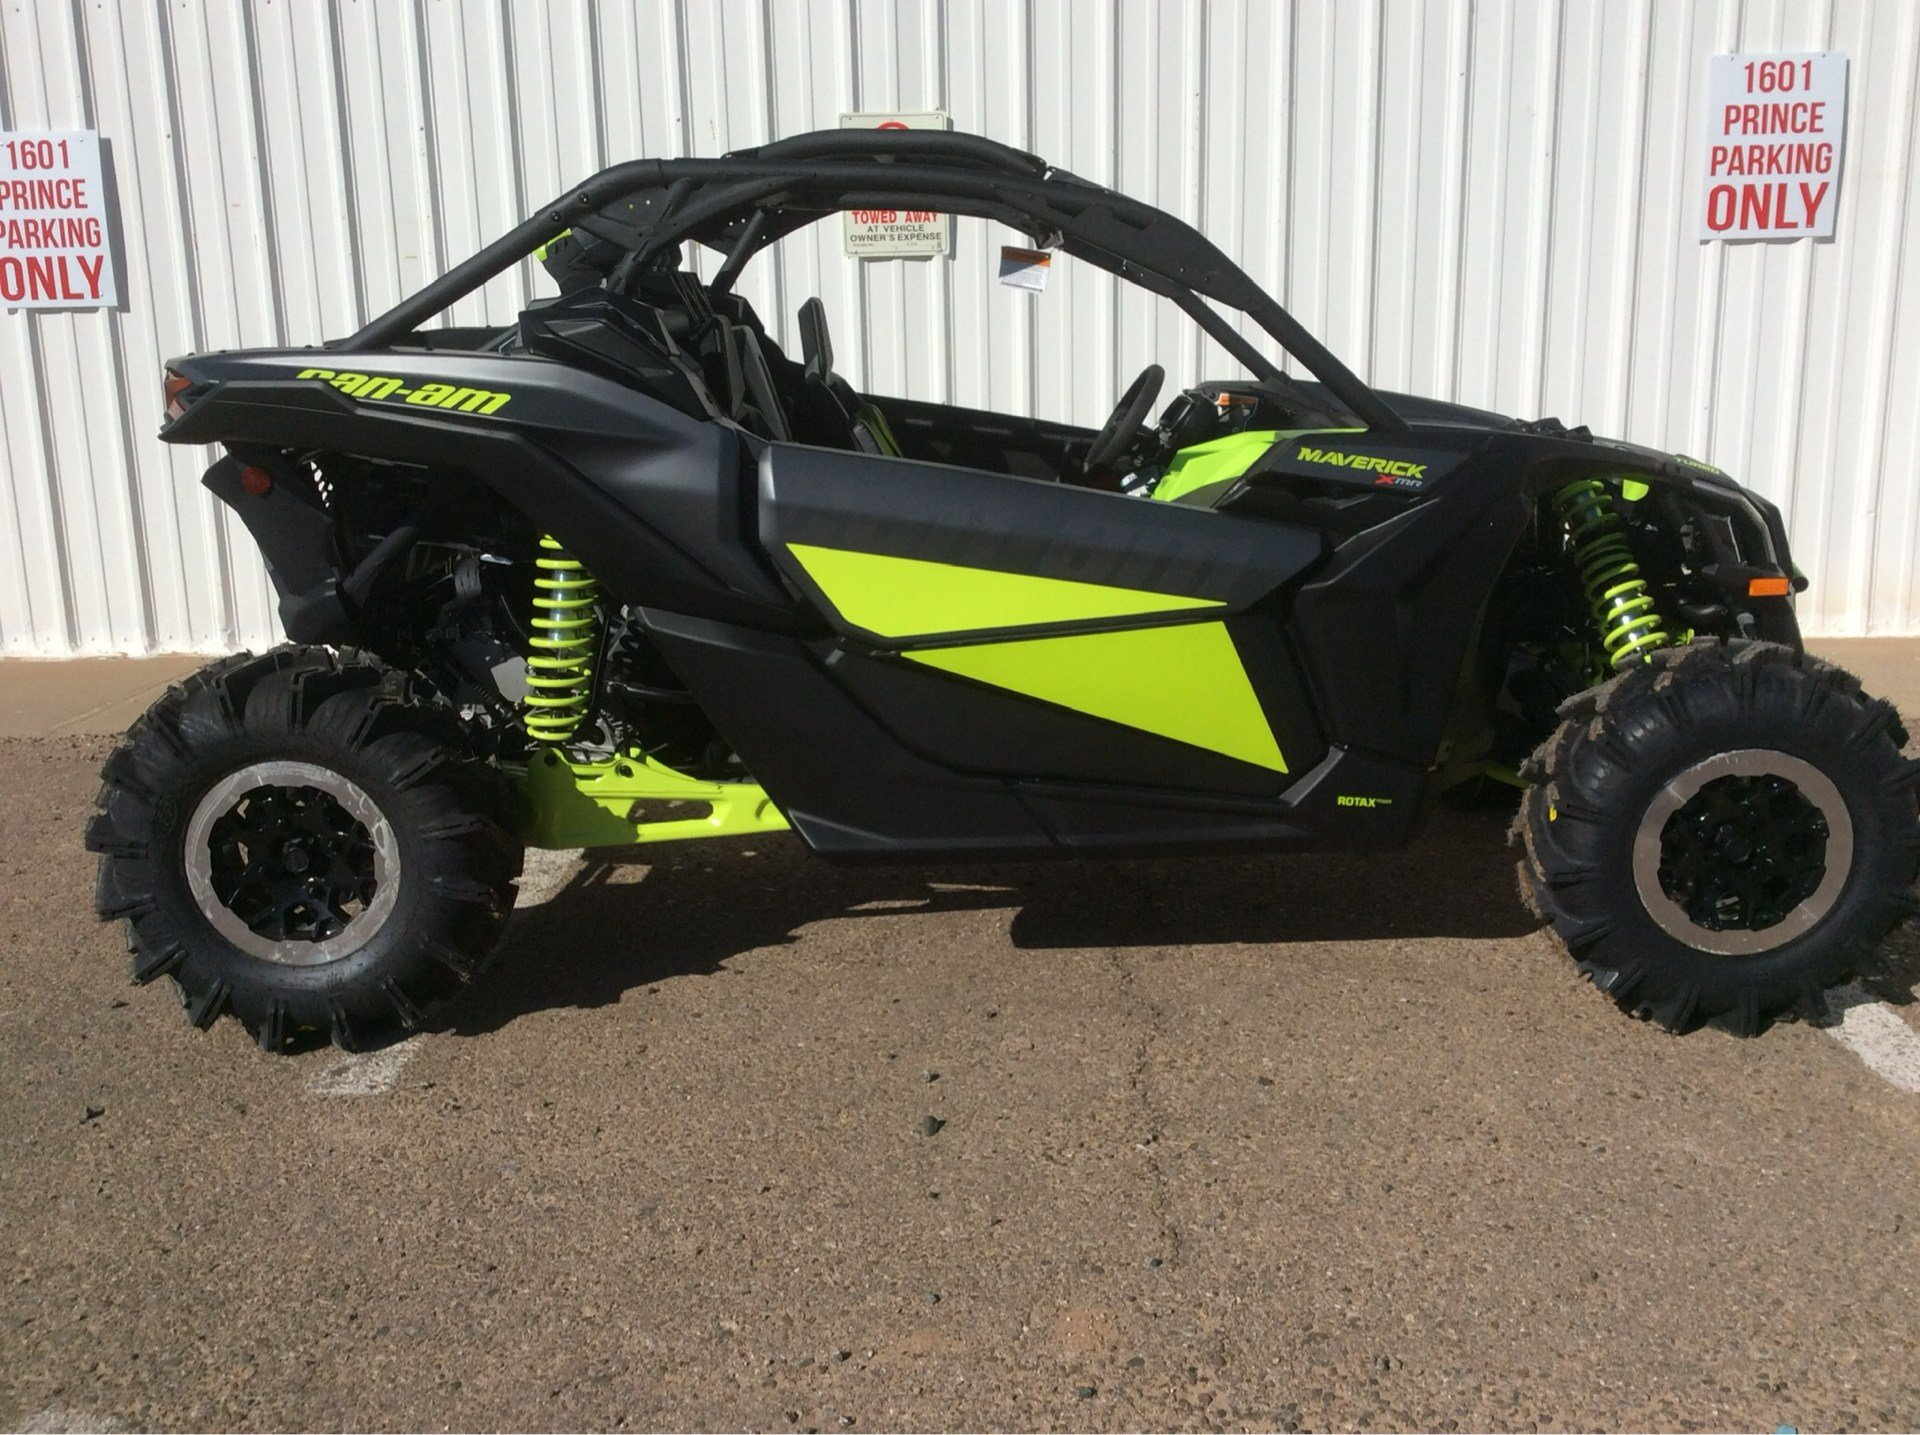 2020 Can-Am Maverick X3 X MR Turbo in Clovis, New Mexico - Photo 1